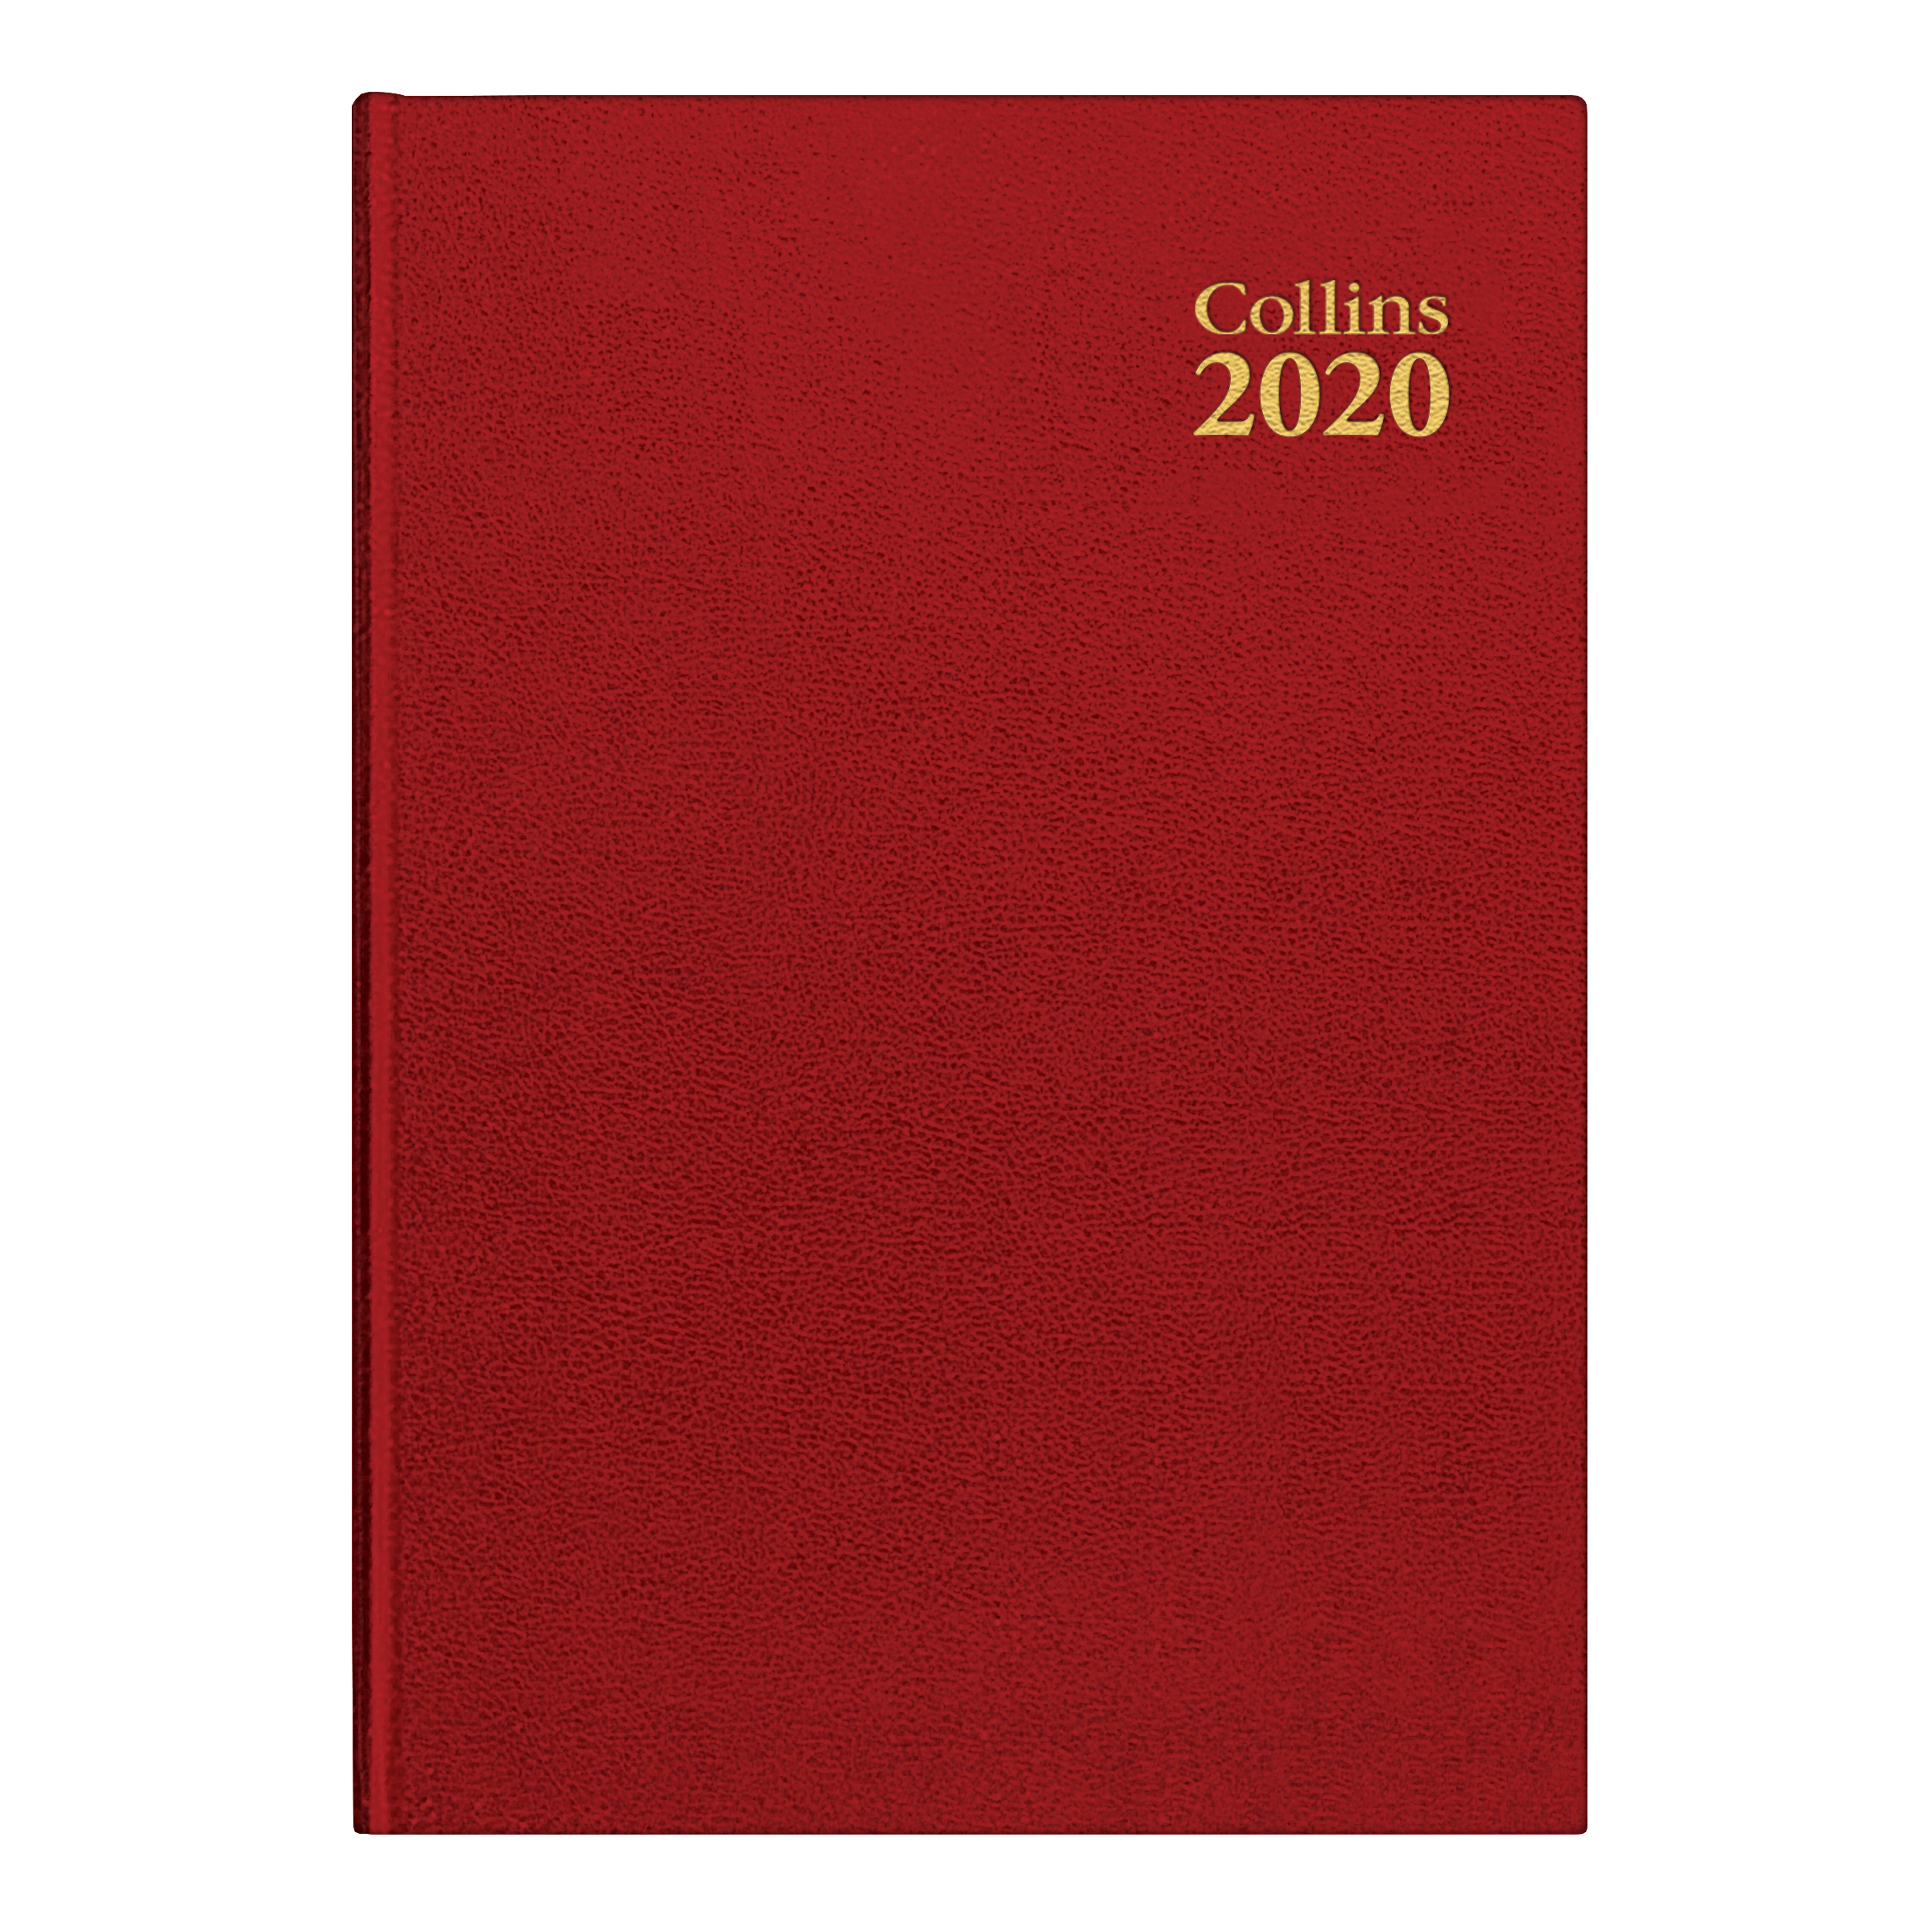 Collins 2020 Royal Desk Diary Day to Page Sewn Binding A5 210x148mm Red Ref 52 Red 2020